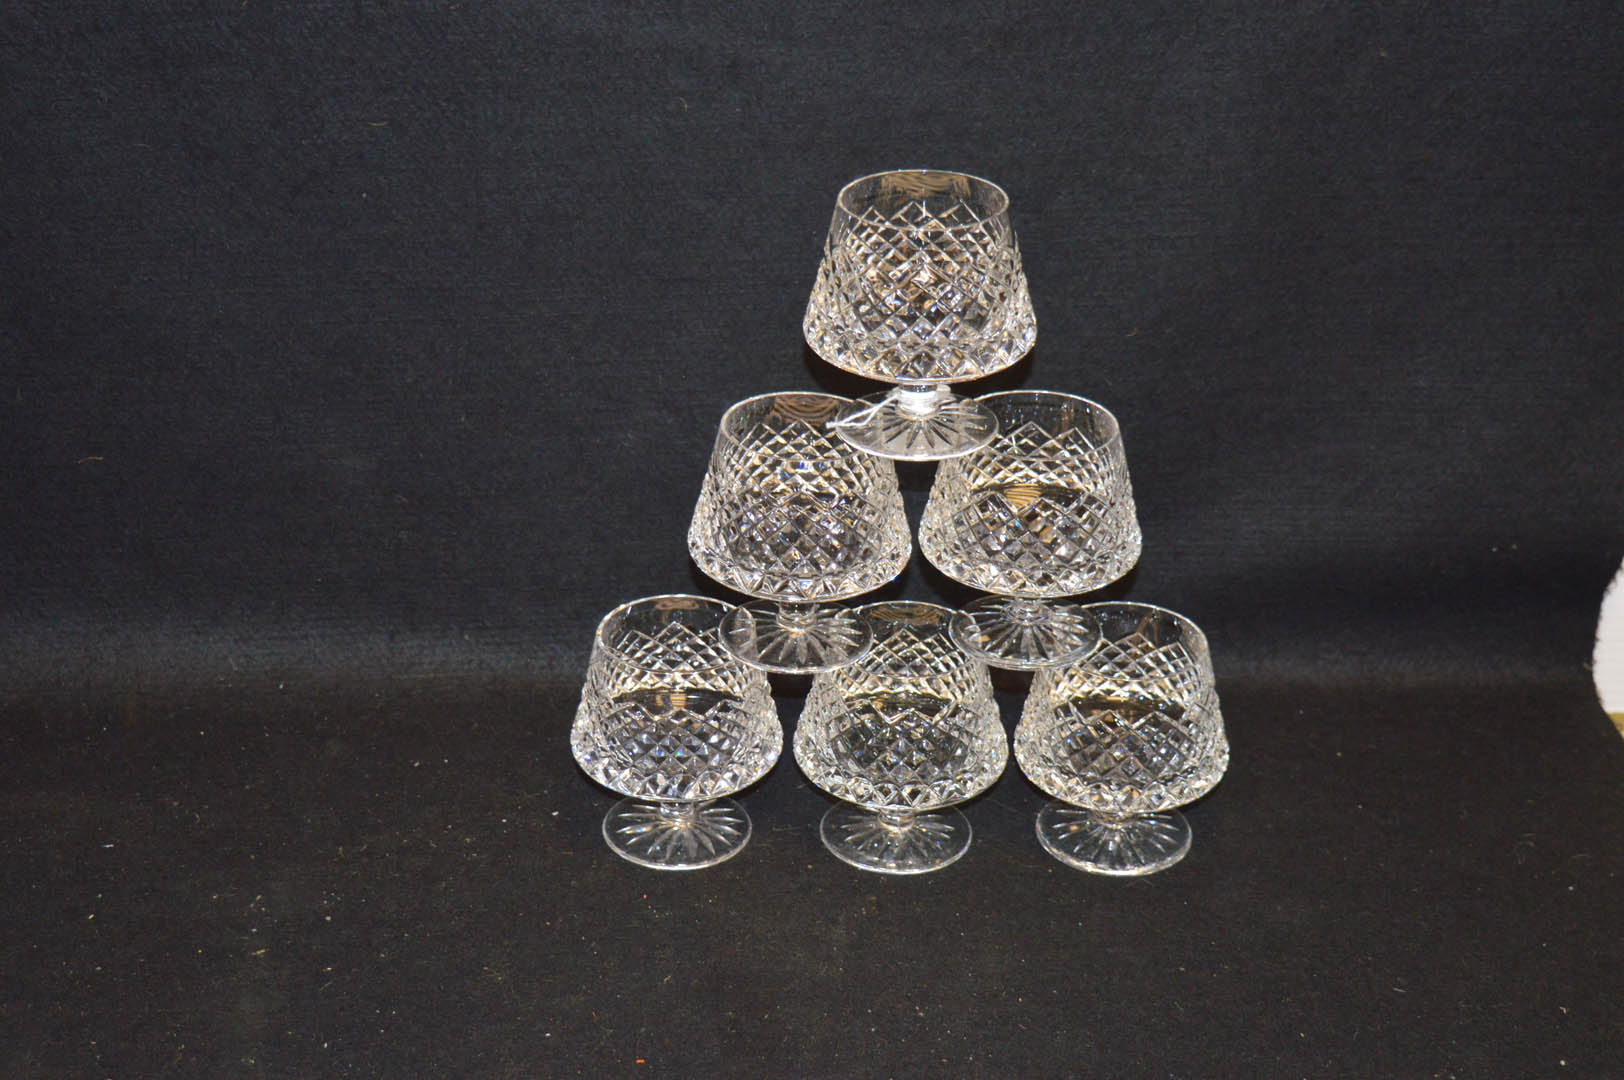 Lot 22 - A Set of Six Cut Glass Drinking Glasses